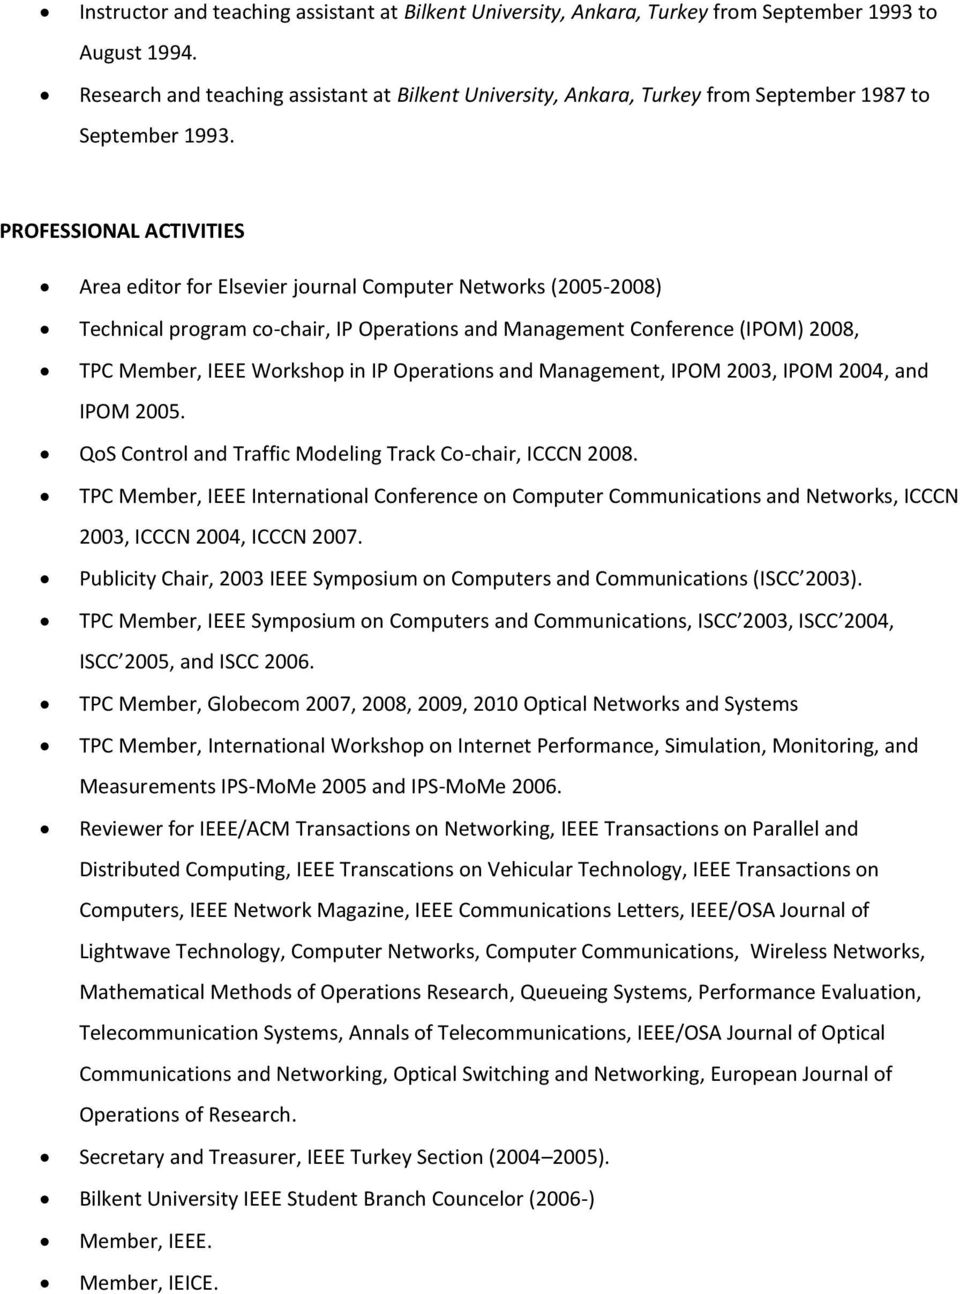 PROFESSIONAL ACTIVITIES Area editor for Elsevier journal Computer Networks (2005-2008) Technical program co-chair, IP Operations and Management Conference (IPOM) 2008, TPC Member, IEEE Workshop in IP